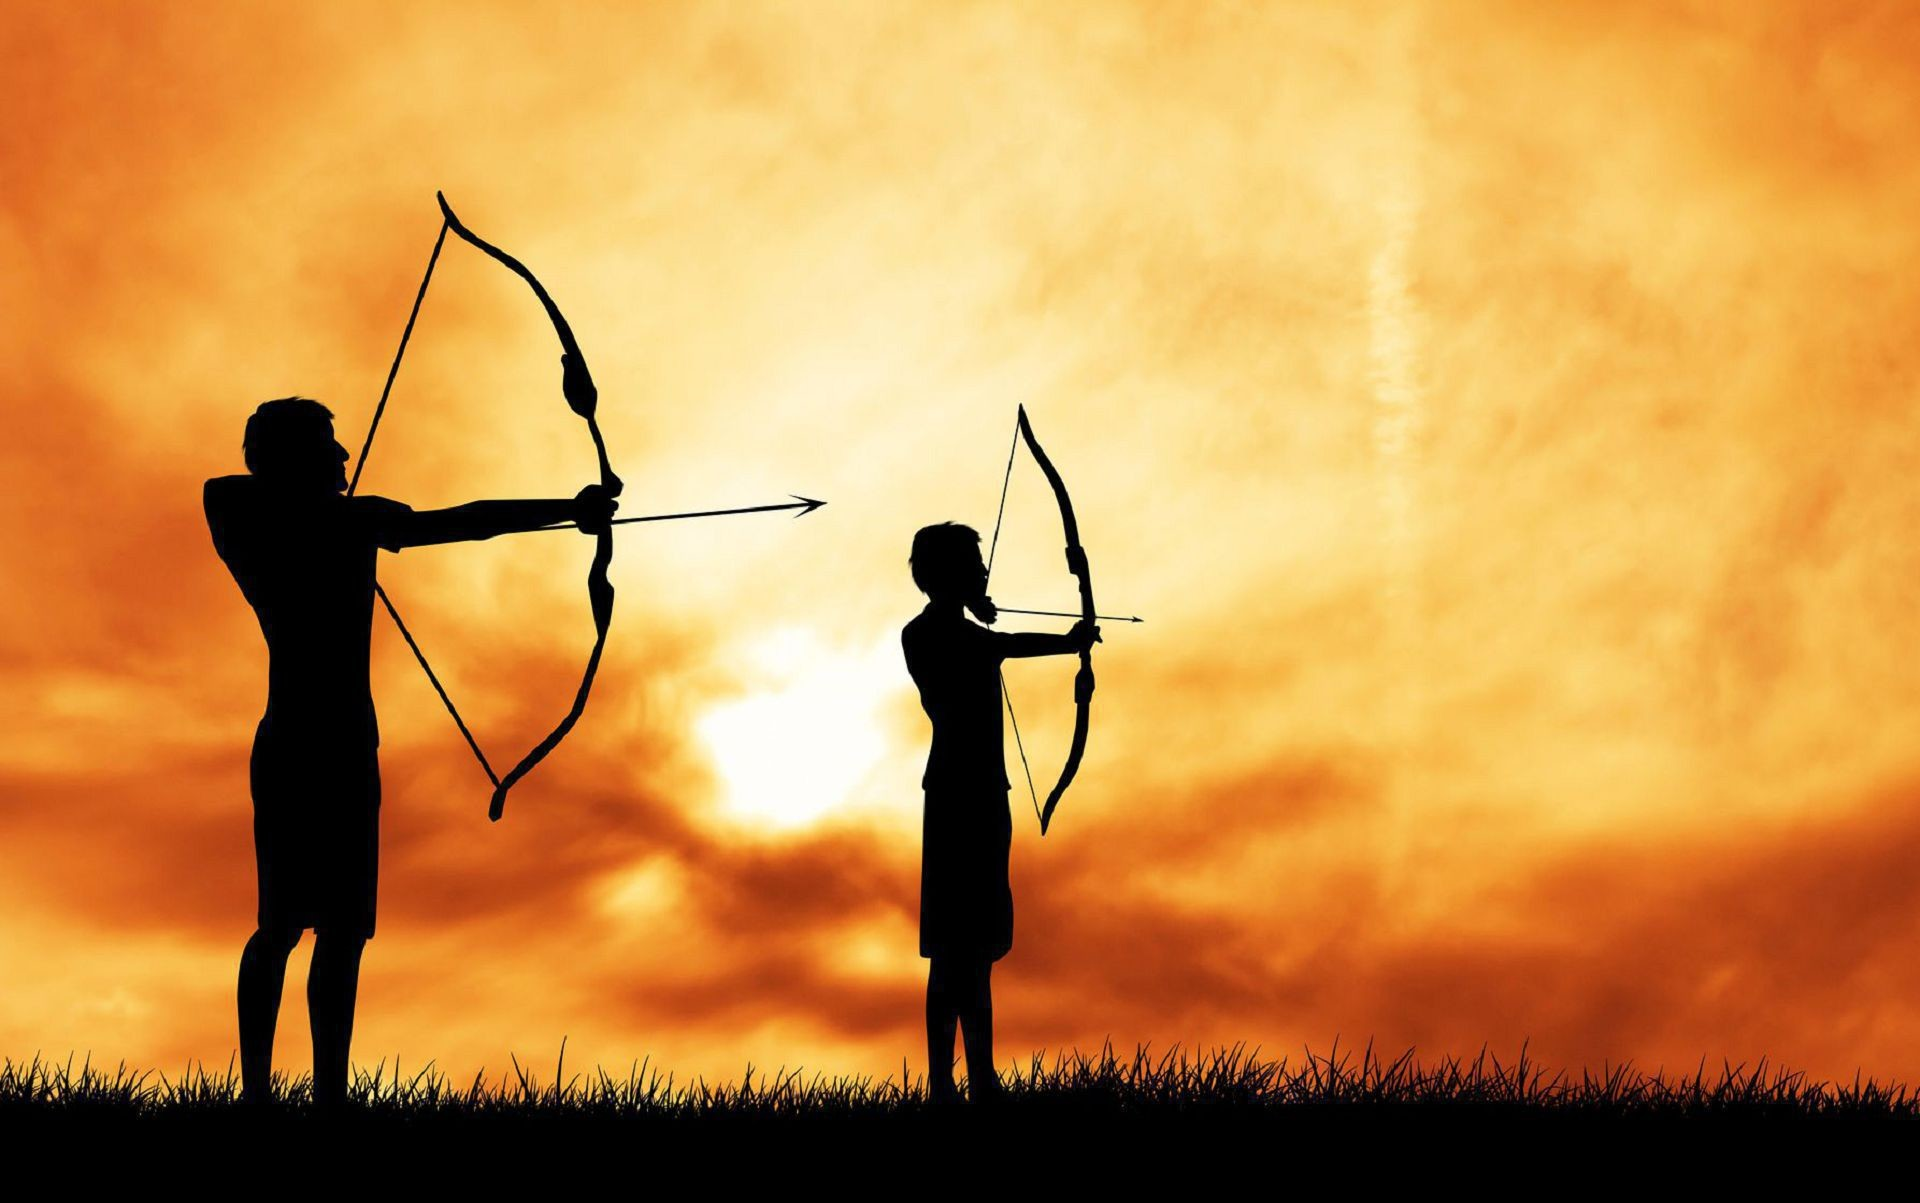 1920x1203 Archery background stock illustration. Illustration of challenge